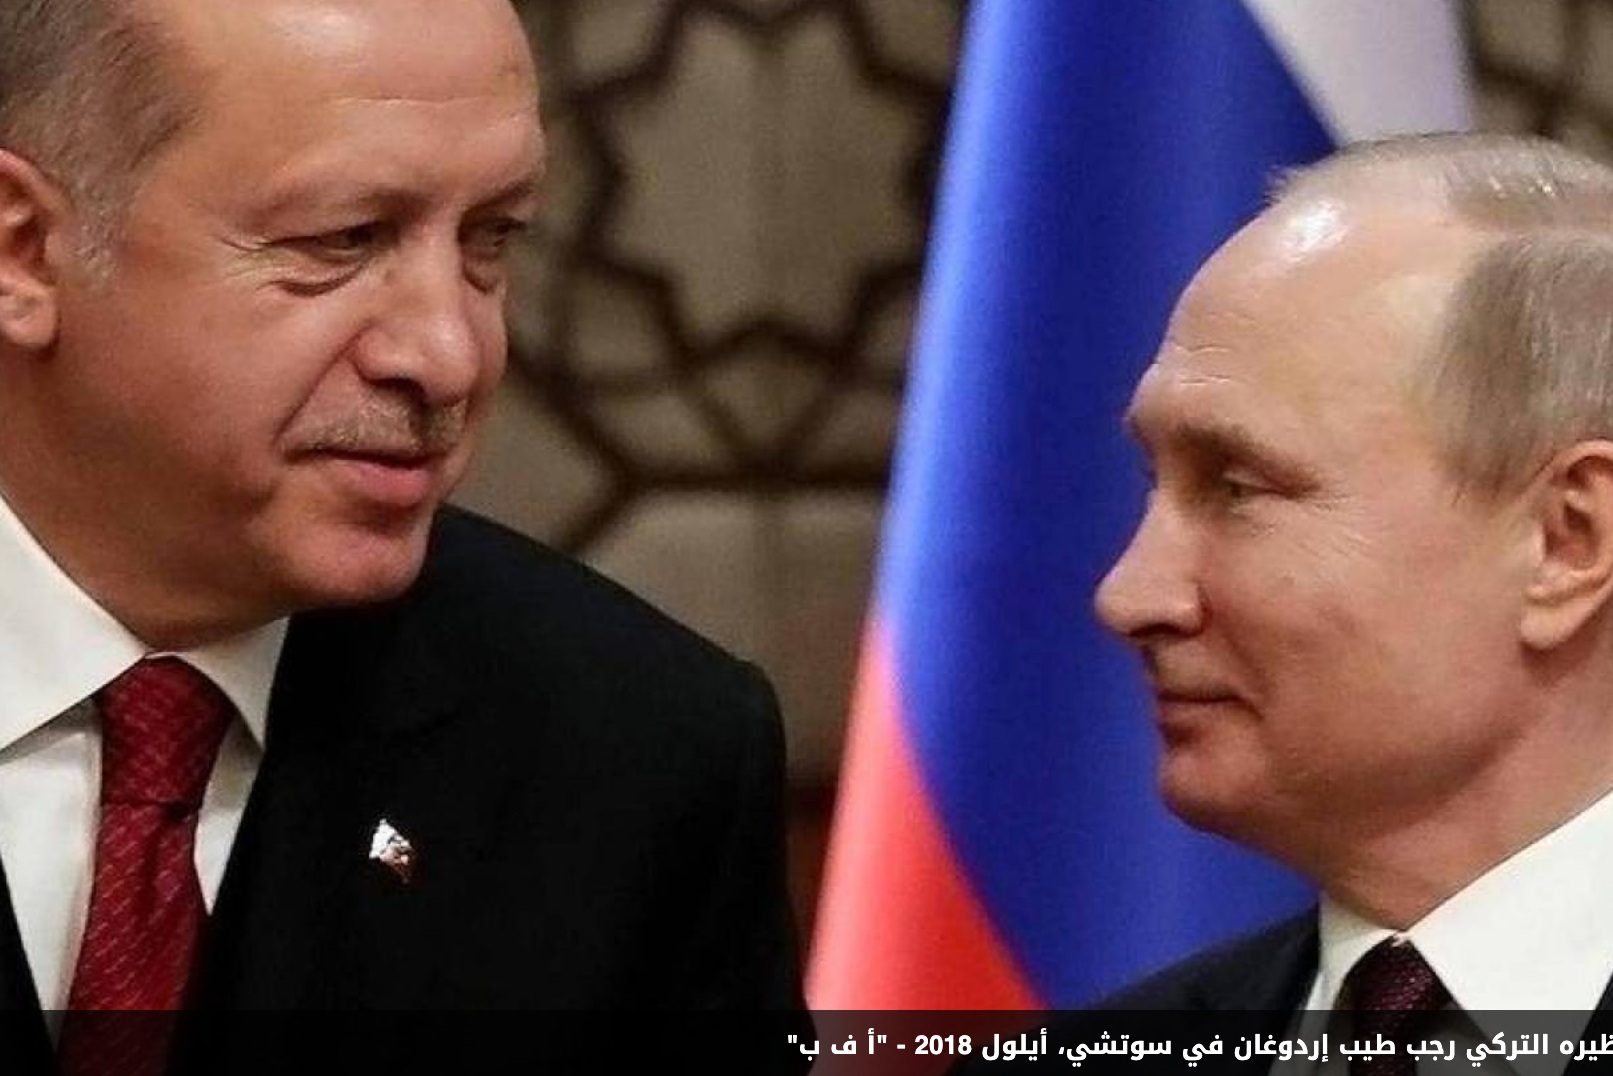 erdogan's visit to russia andthe s-400/f-35 row - I spoke to the Lebanese daily Annahar about whether the AKP's defeat in the local elections could weaken his bargaining power regarding the purchasing of the S-400 missile system.(April 2019)Read more here.